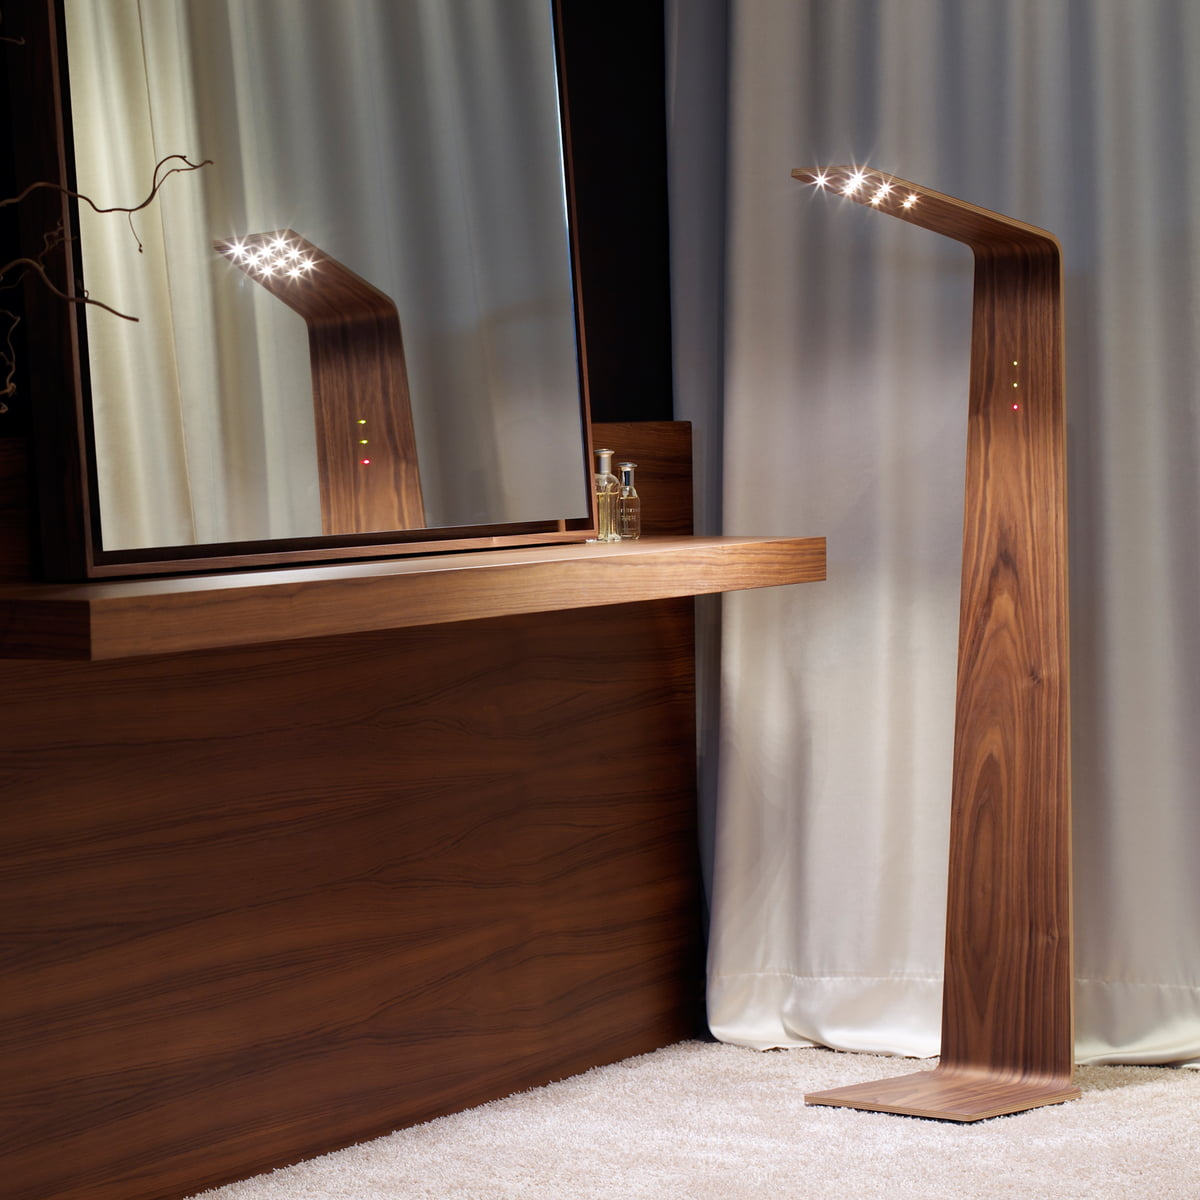 led 2 floor lamp by tunto ideal for tables and shelves